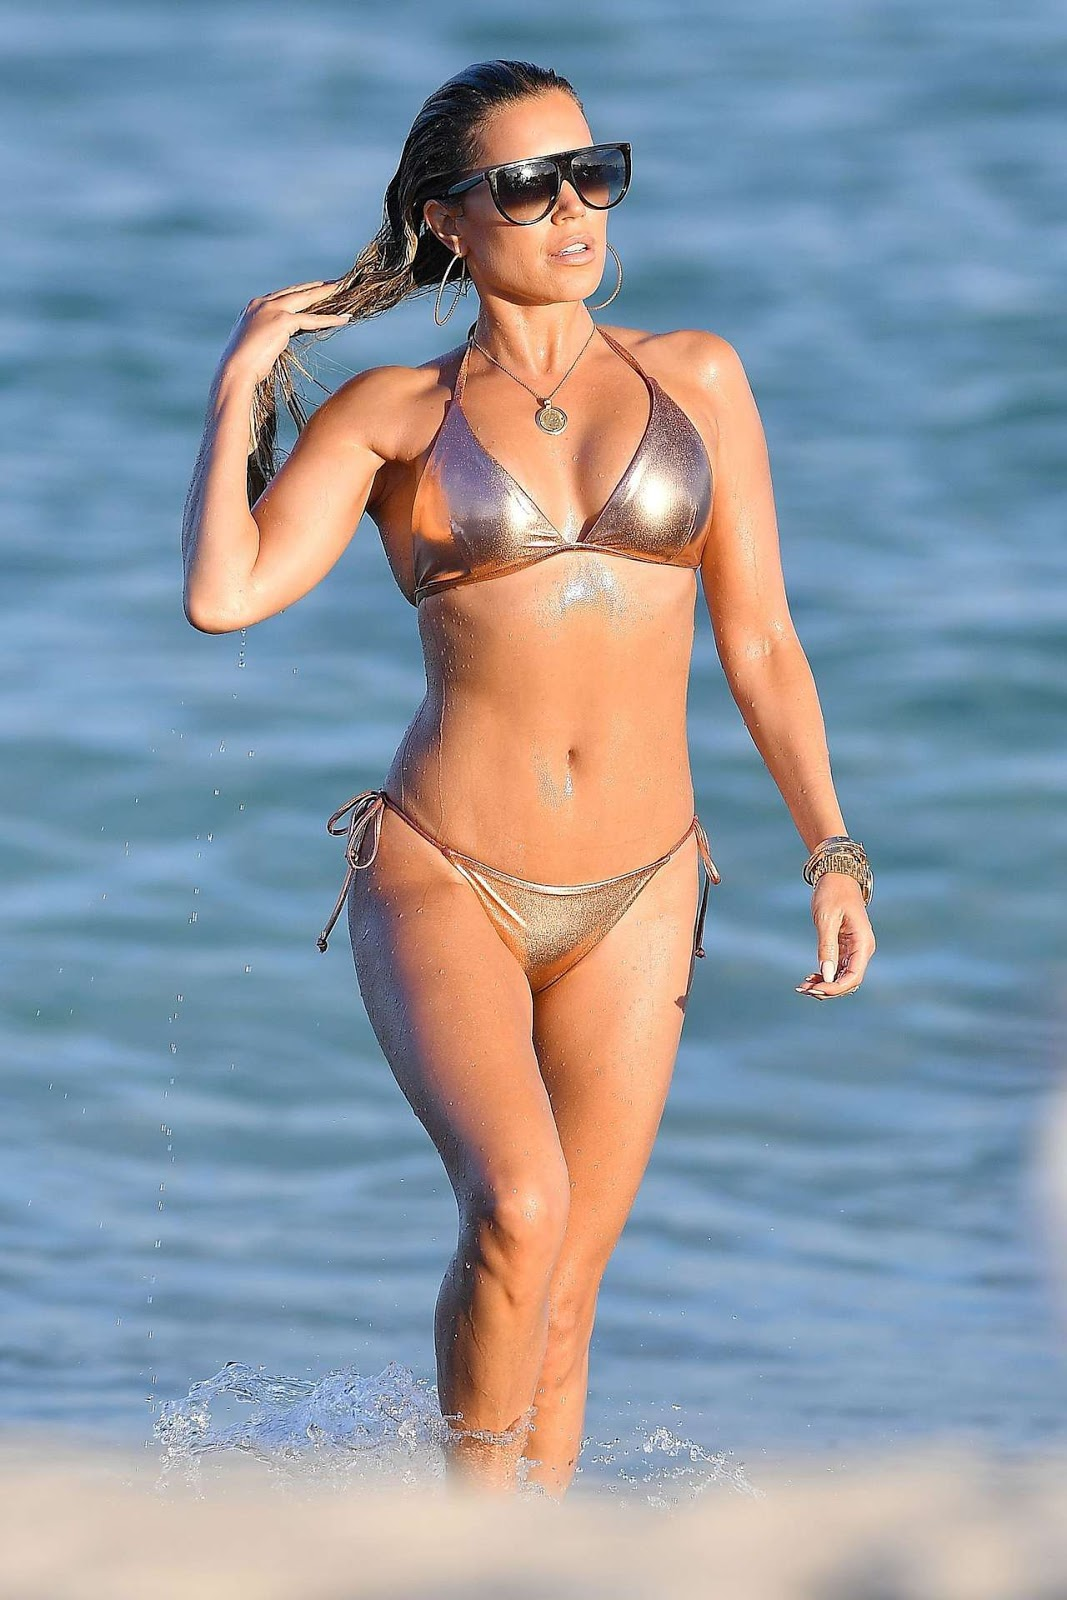 Sylvie Meis shows off envy inducing bikini body in barely there metallic two-piece on Miami beach